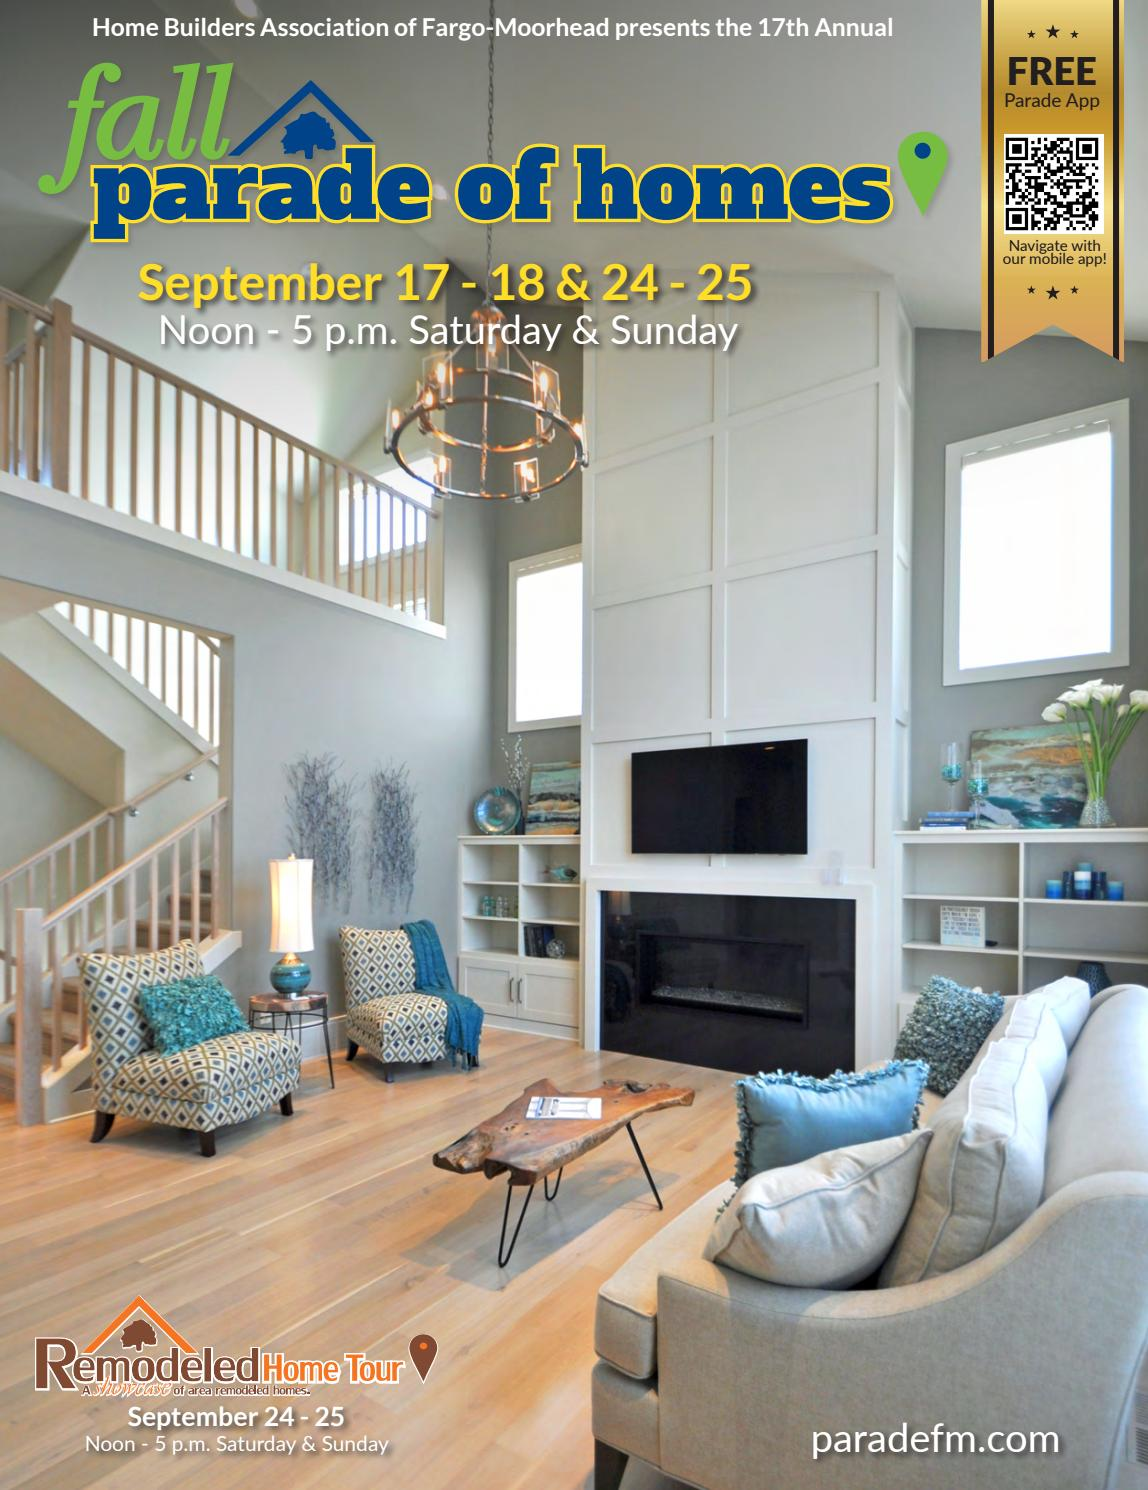 Fall Parade of Homes and Remodeled Home Tour 2016 by Home Builders ...